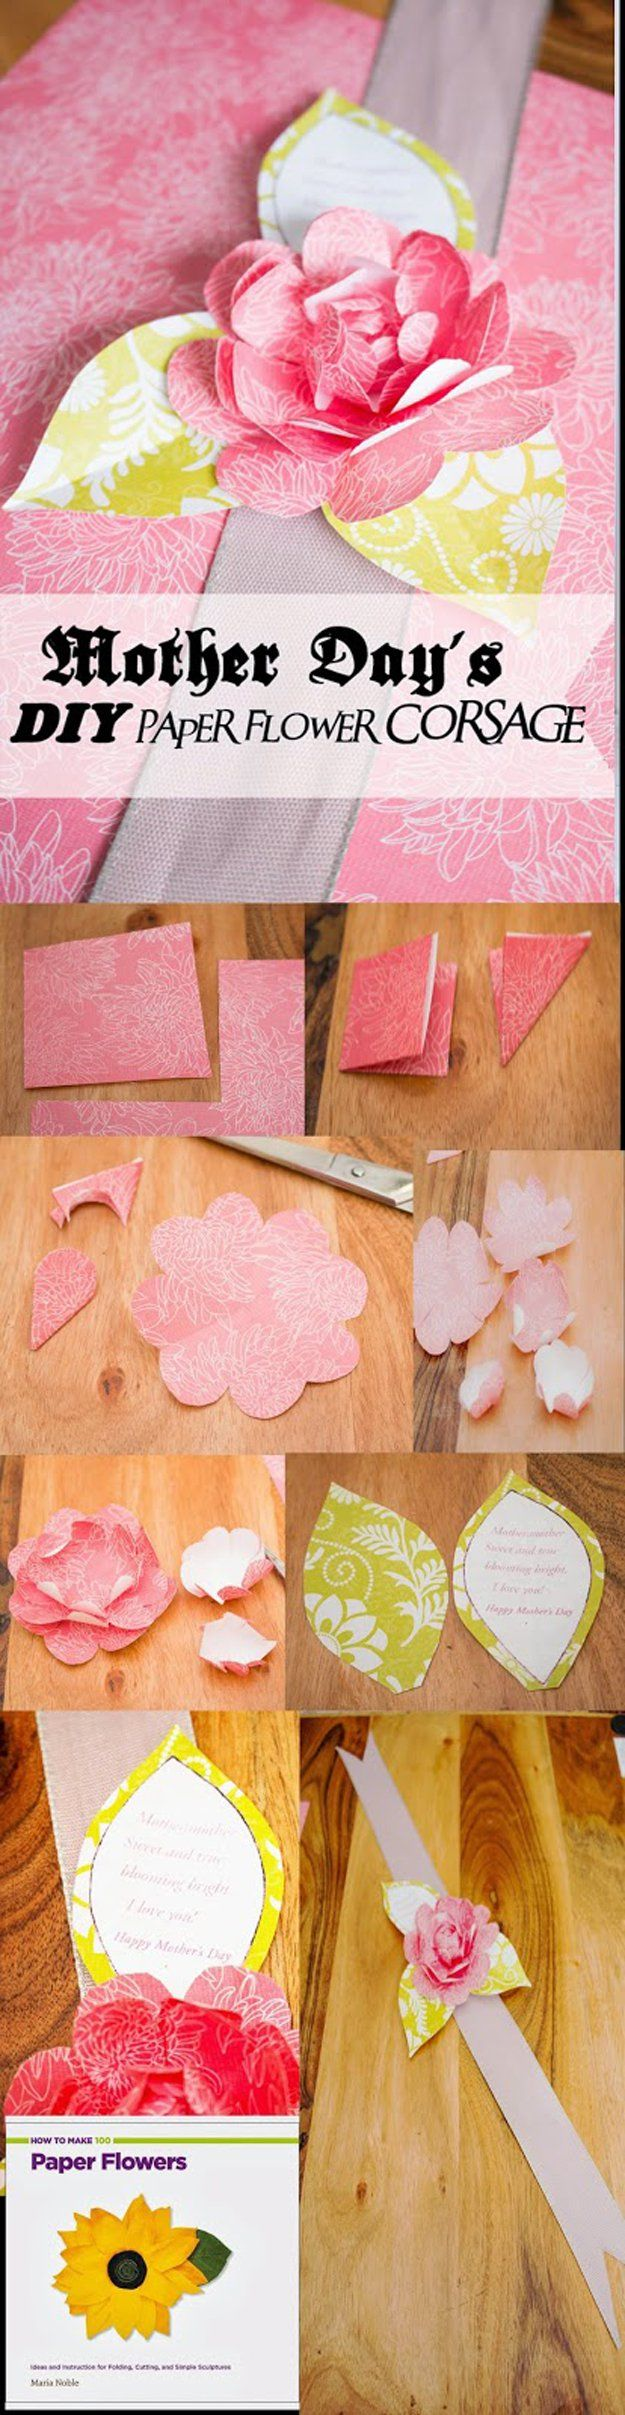 Best 25+ Mother day gifts ideas on Pinterest | Diy mother ...